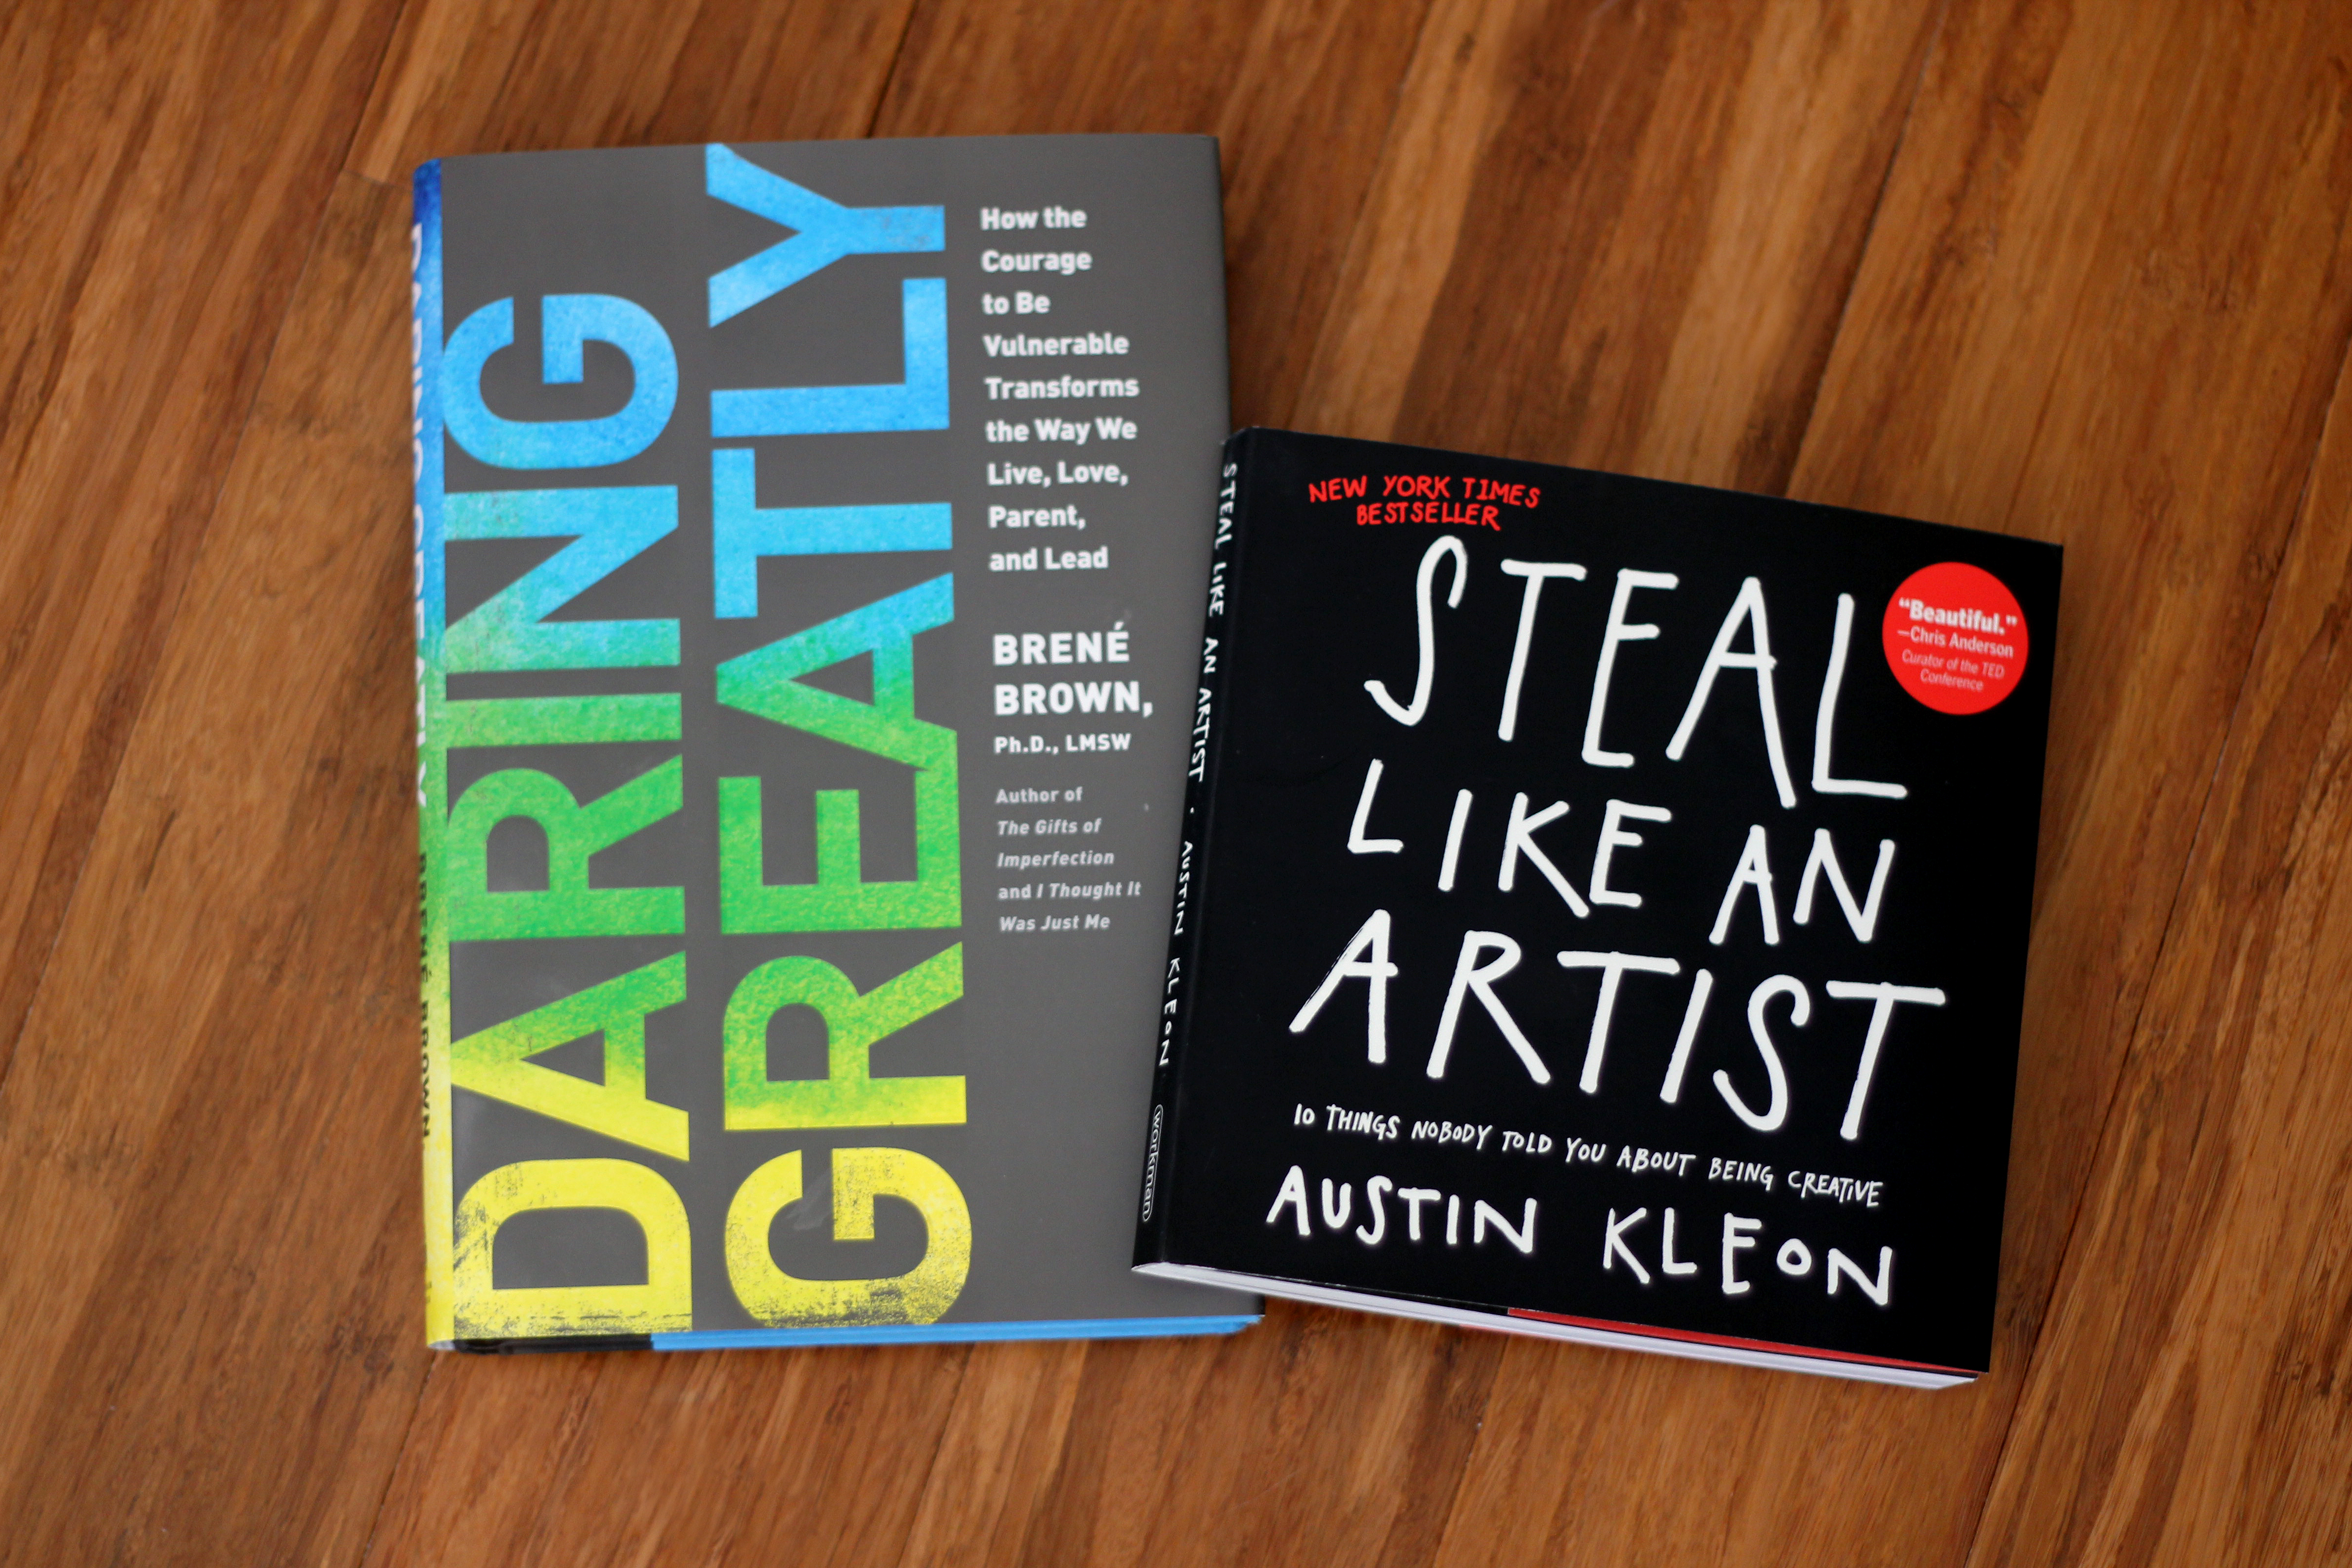 Trying To Find More Time To Read In Order Toplete Reading The  Myriad Of Books On My Desk! I Recently Finished Reading Daring Greatly By Brene  Brown;